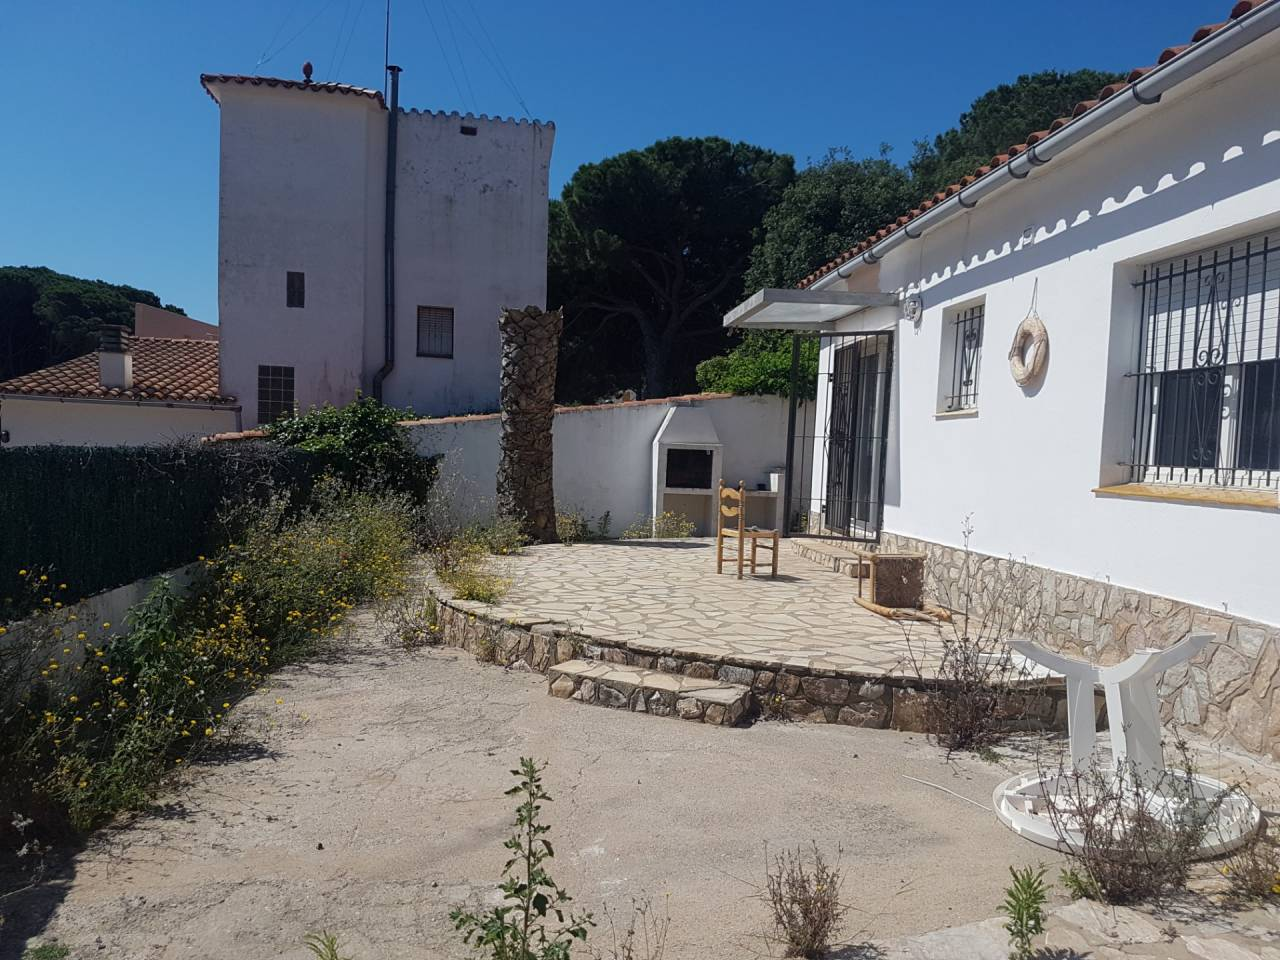 005069 - Detached house for sale in L´Escala